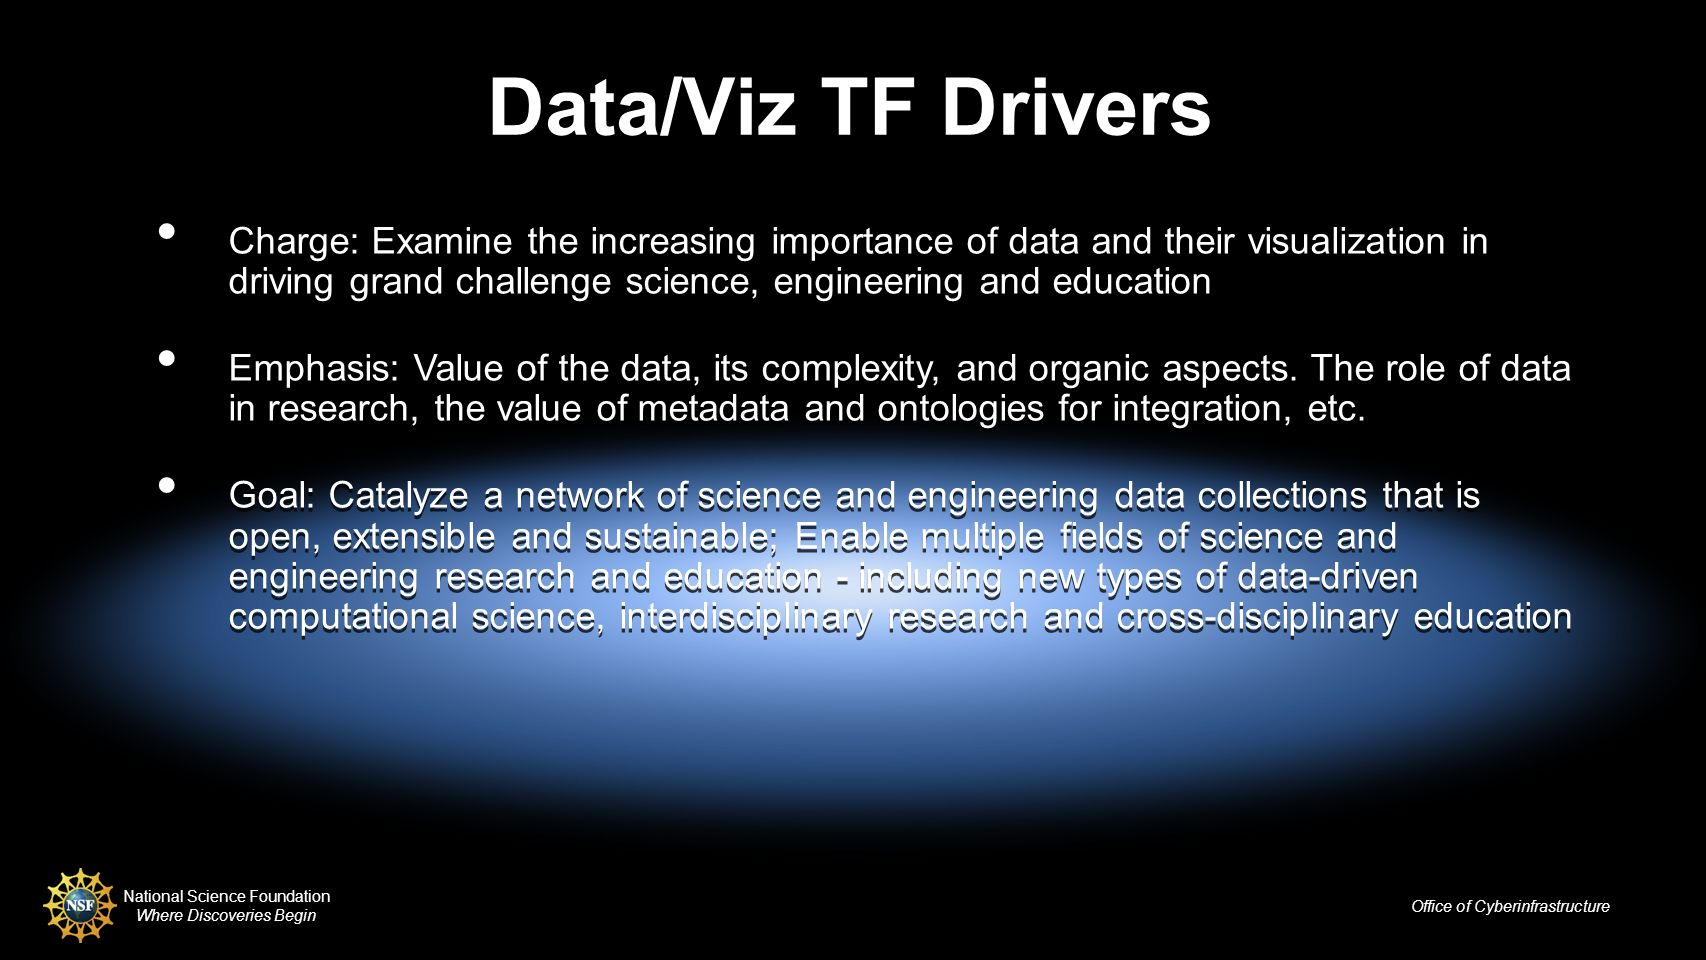 National Science Foundation Where Discoveries Begin Office of Cyberinfrastructure Data/Viz TF Drivers Charge: Examine the increasing importance of data and their visualization in driving grand challenge science, engineering and education Emphasis: Value of the data, its complexity, and organic aspects.